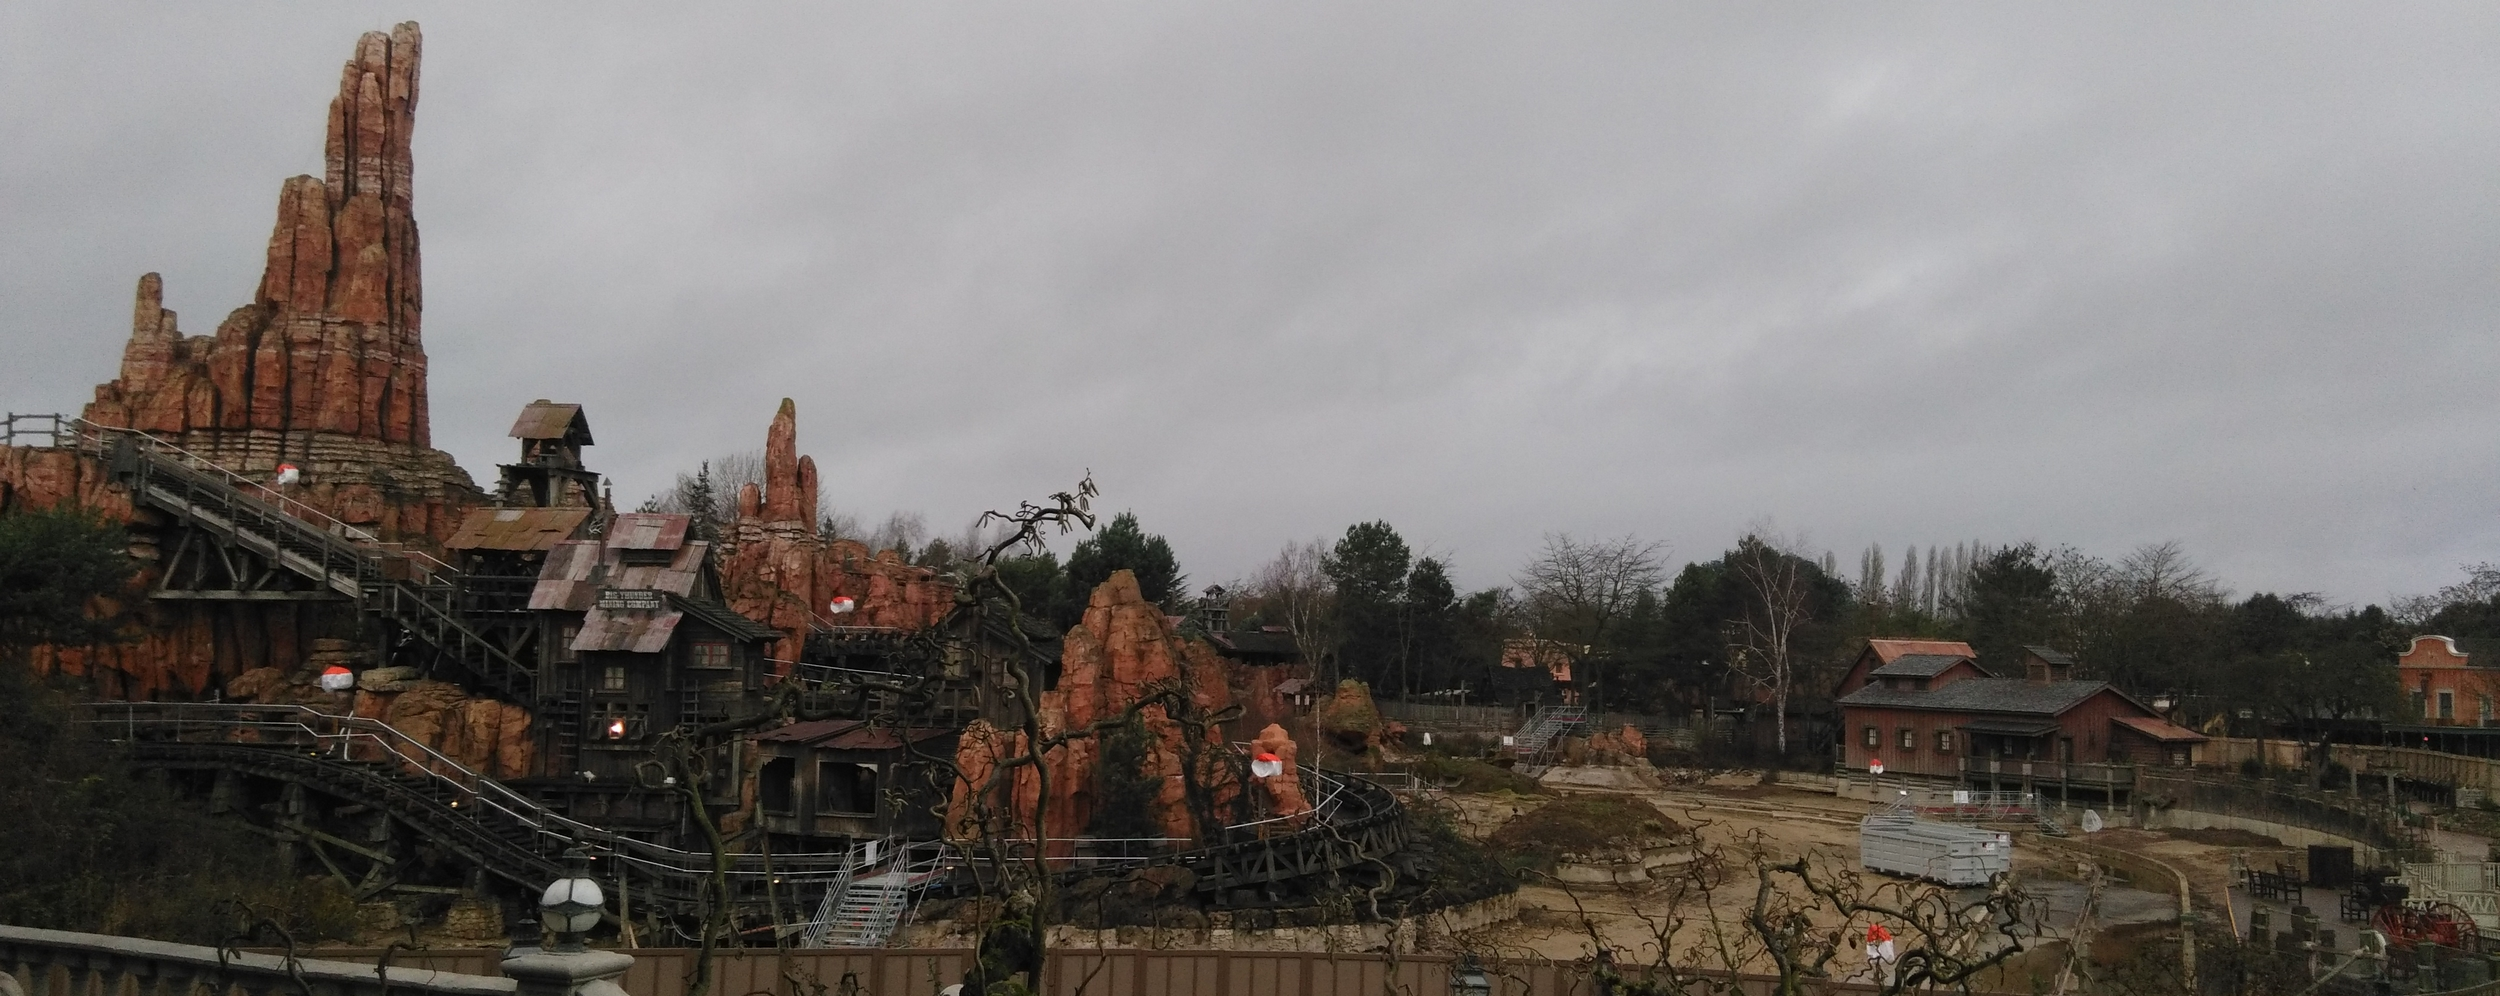 Big Thunder Mountain - Janvier 2016